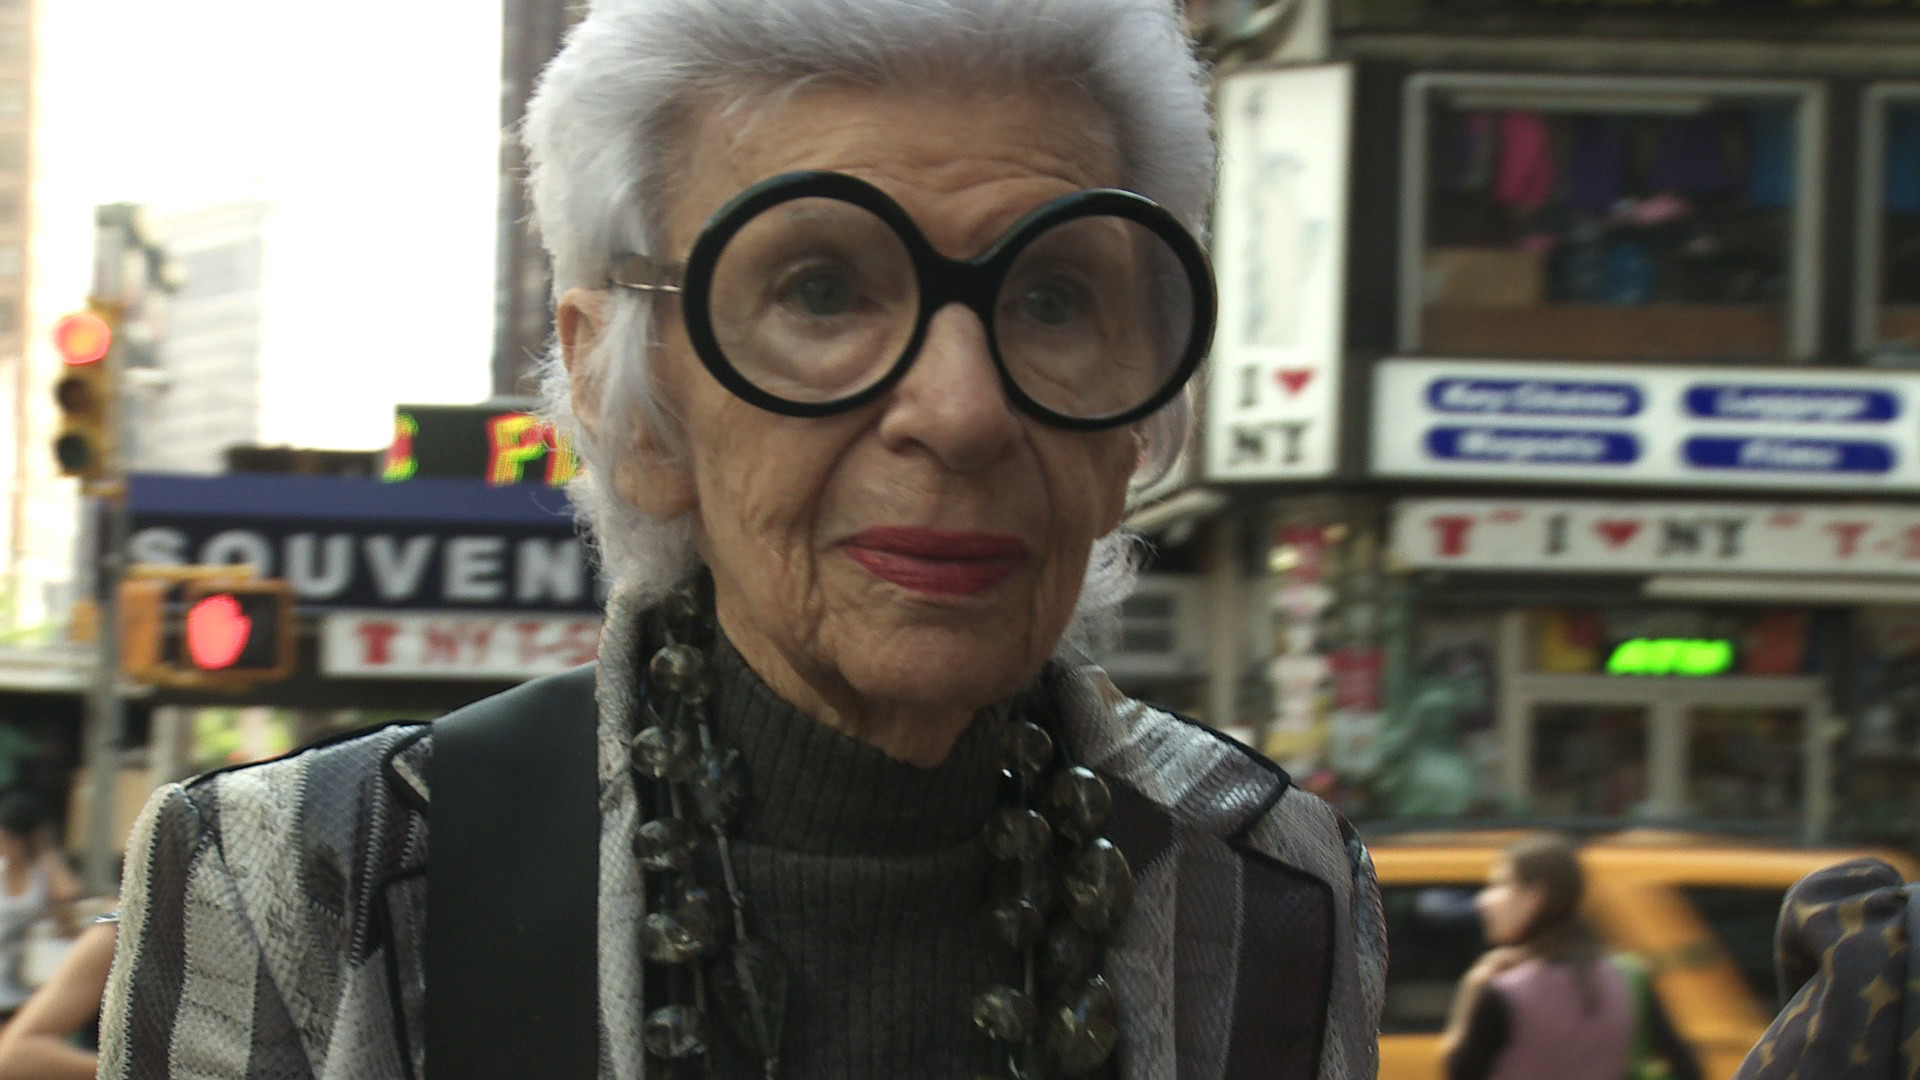 Iris. 2014. USA. Directed by Albert Maysles. Image courtesy of Magnolia Pictures